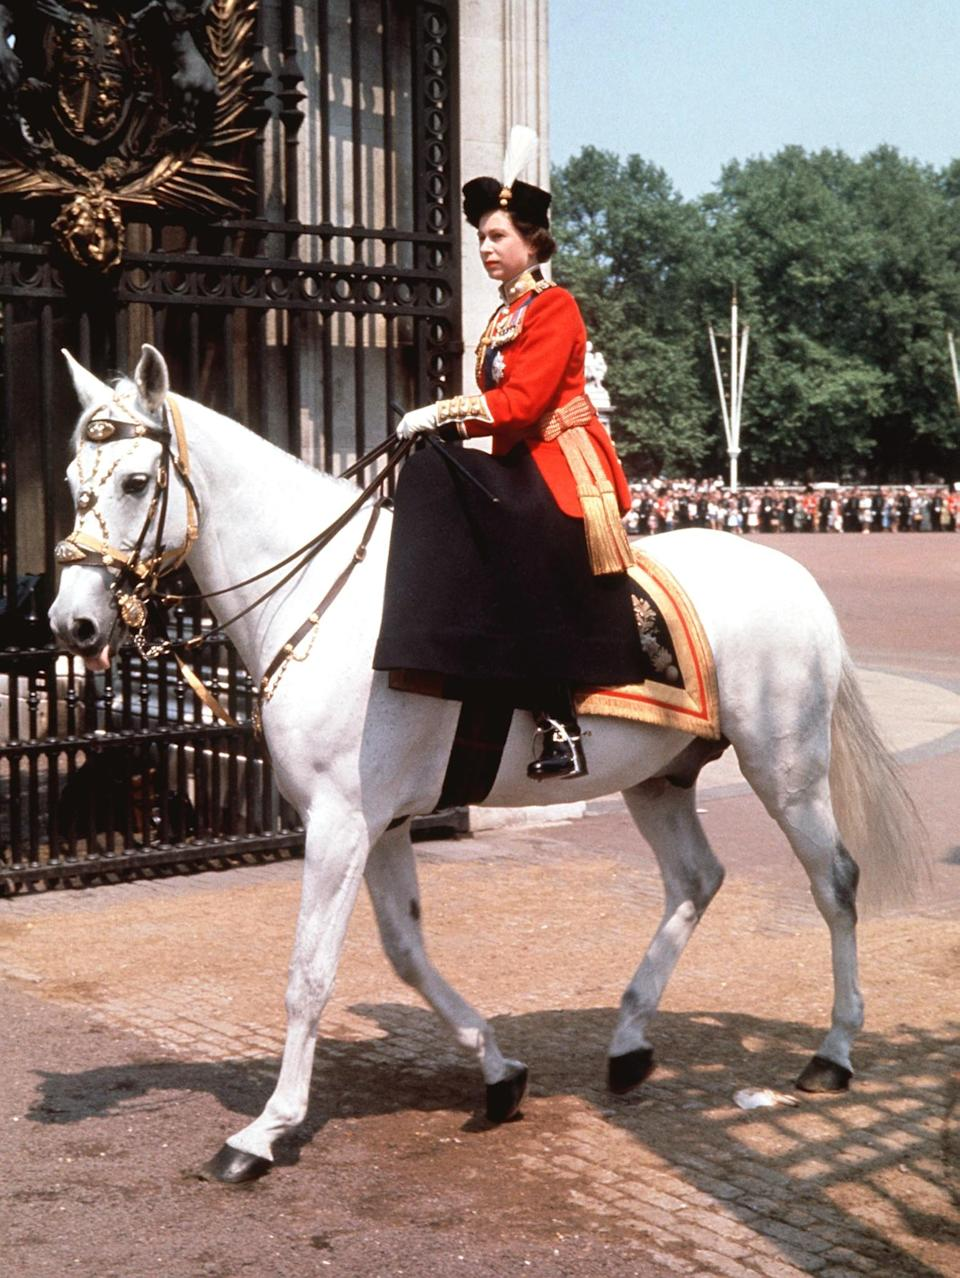 <p>The Queen returns to Buckingham Palace after attending the Trooping of the Colour ceremony. (PA Archive) </p>